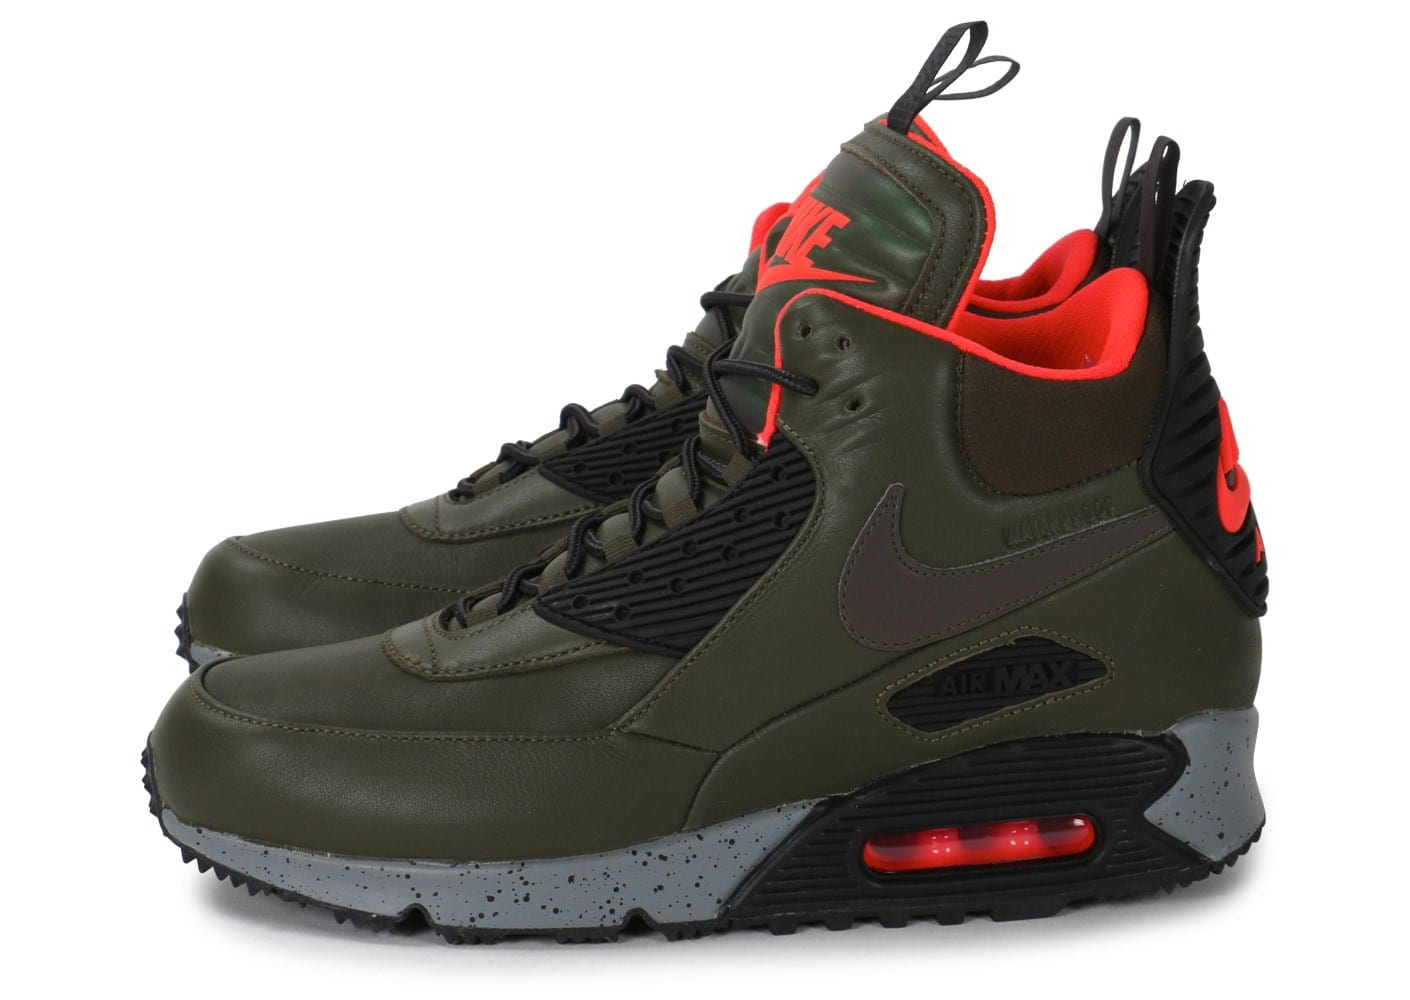 online store 274ae 3a9f7 Cliquez pour zoomer Chaussures Nike Air Max 90 Sneakerboot Winter kaki vue  extérieure ...